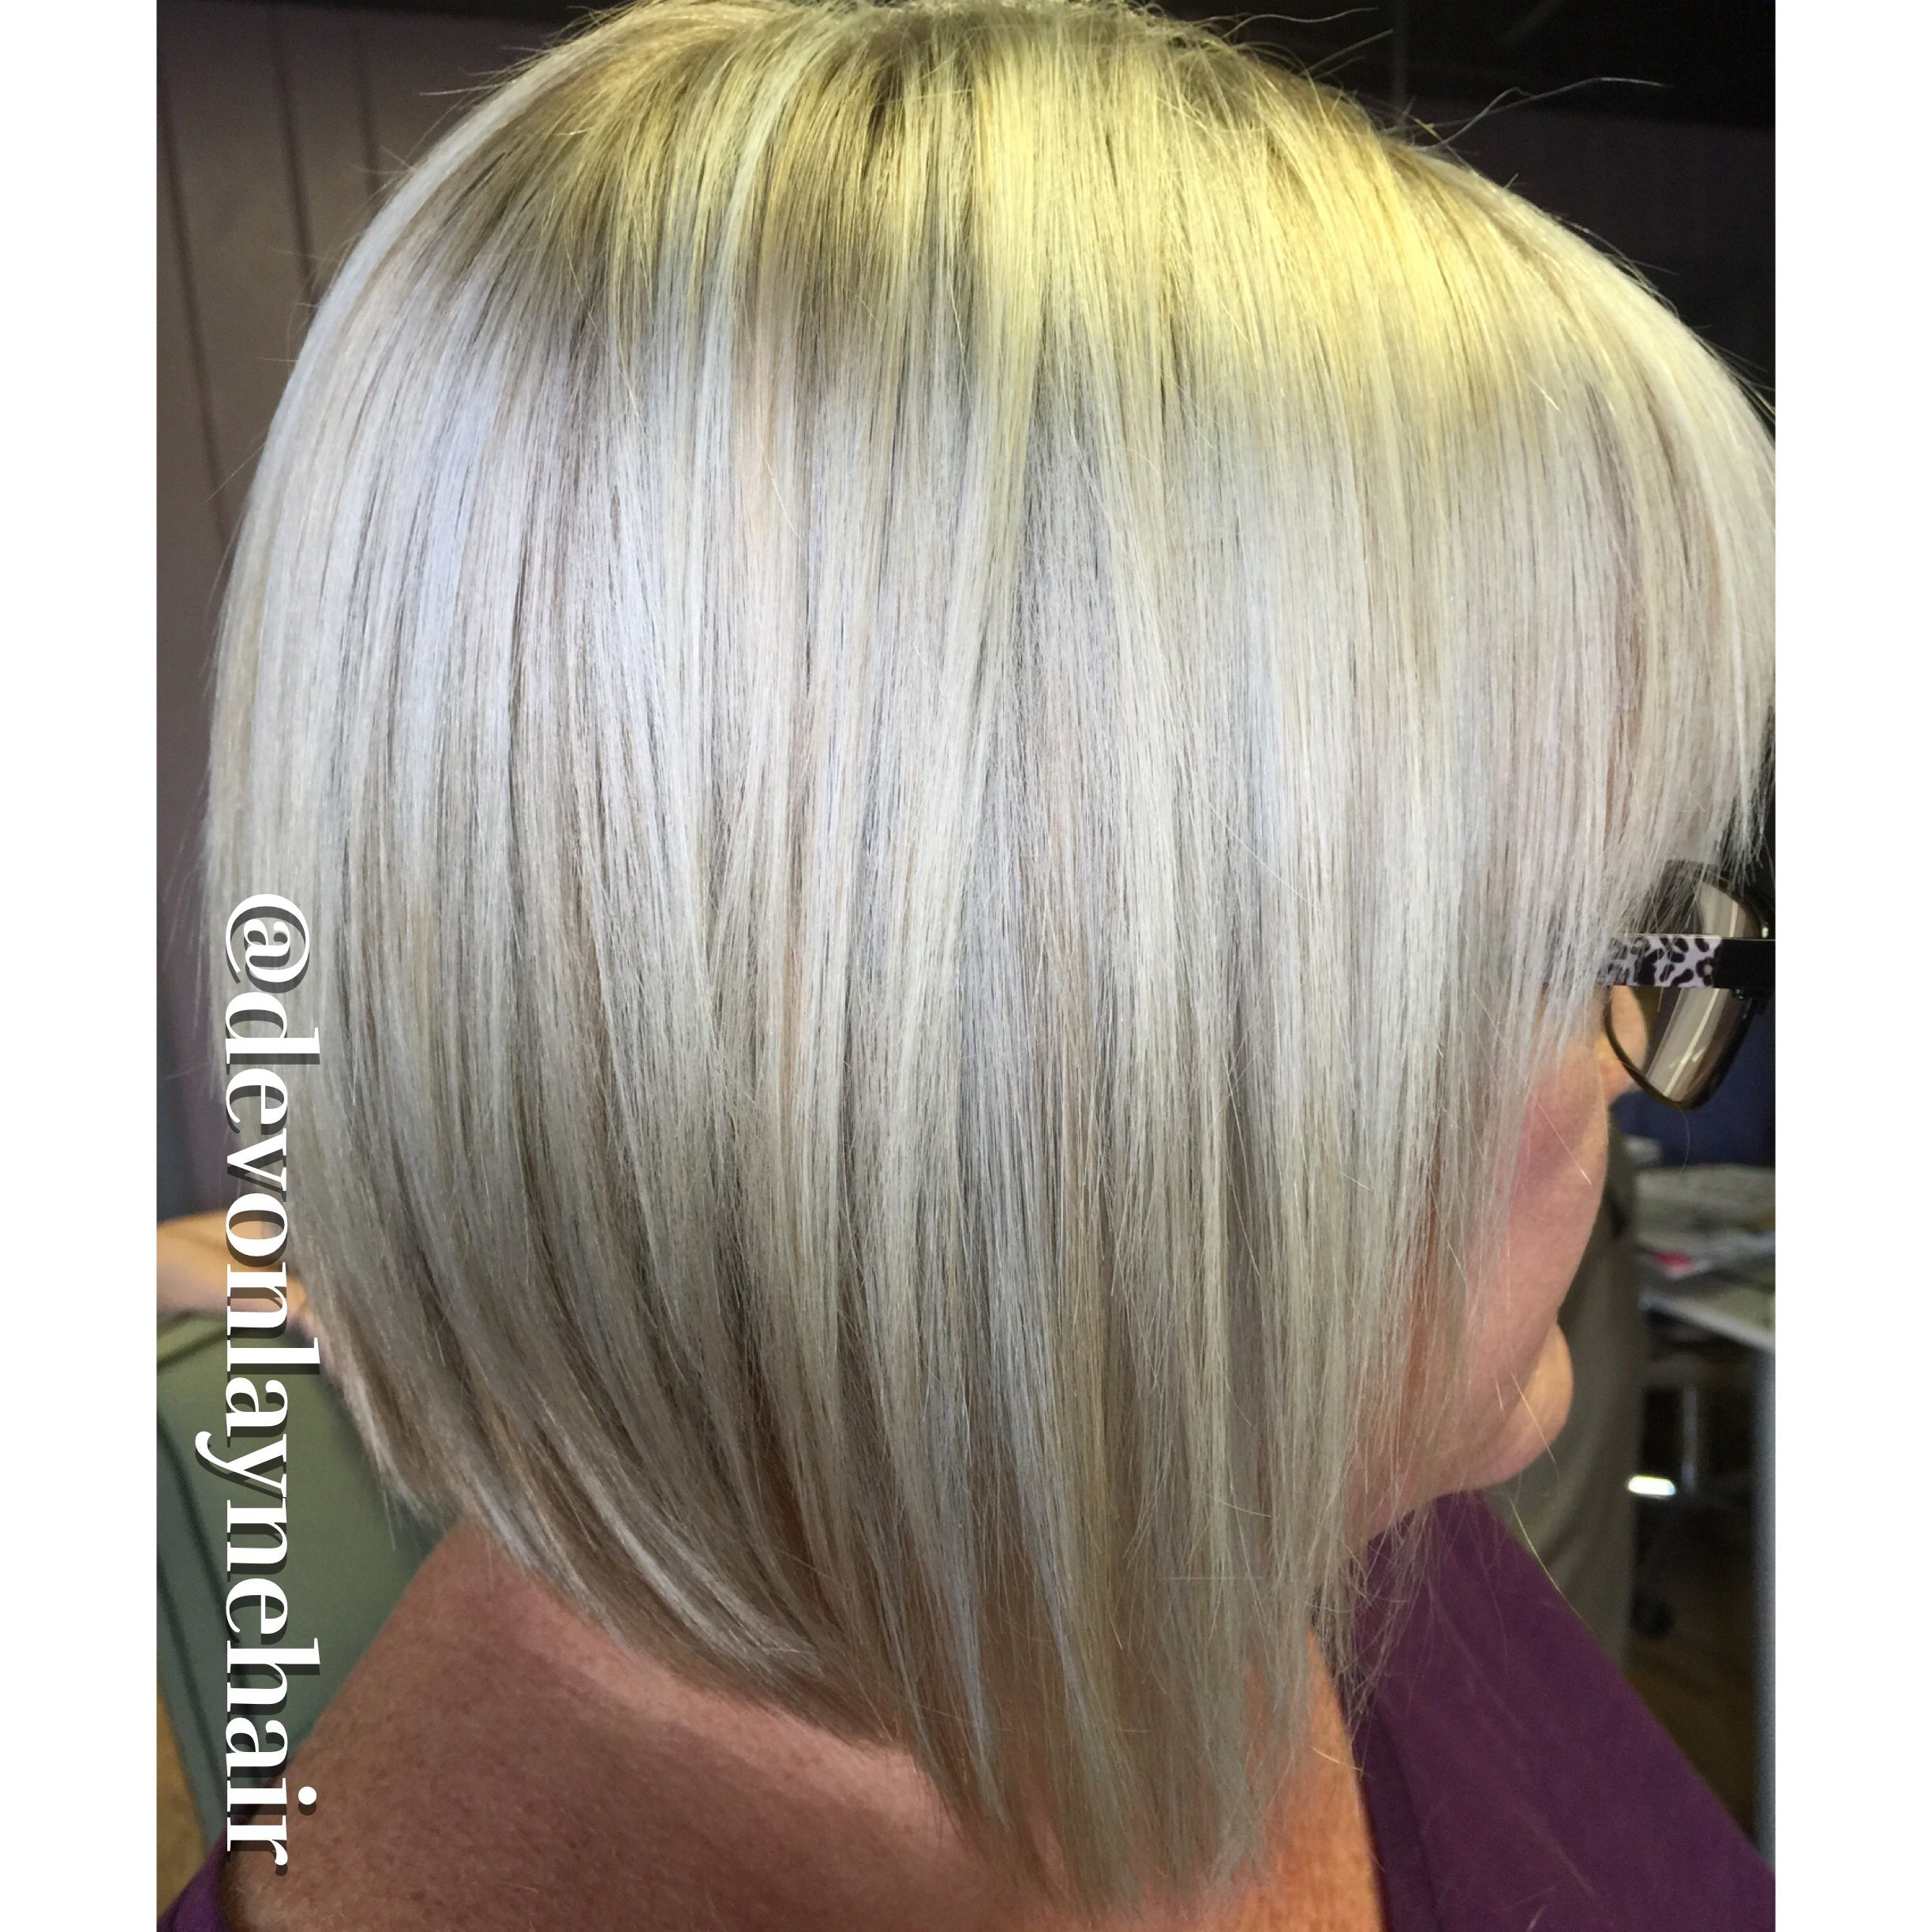 Icy blonde hair with Kevin Murphy Color.Me line